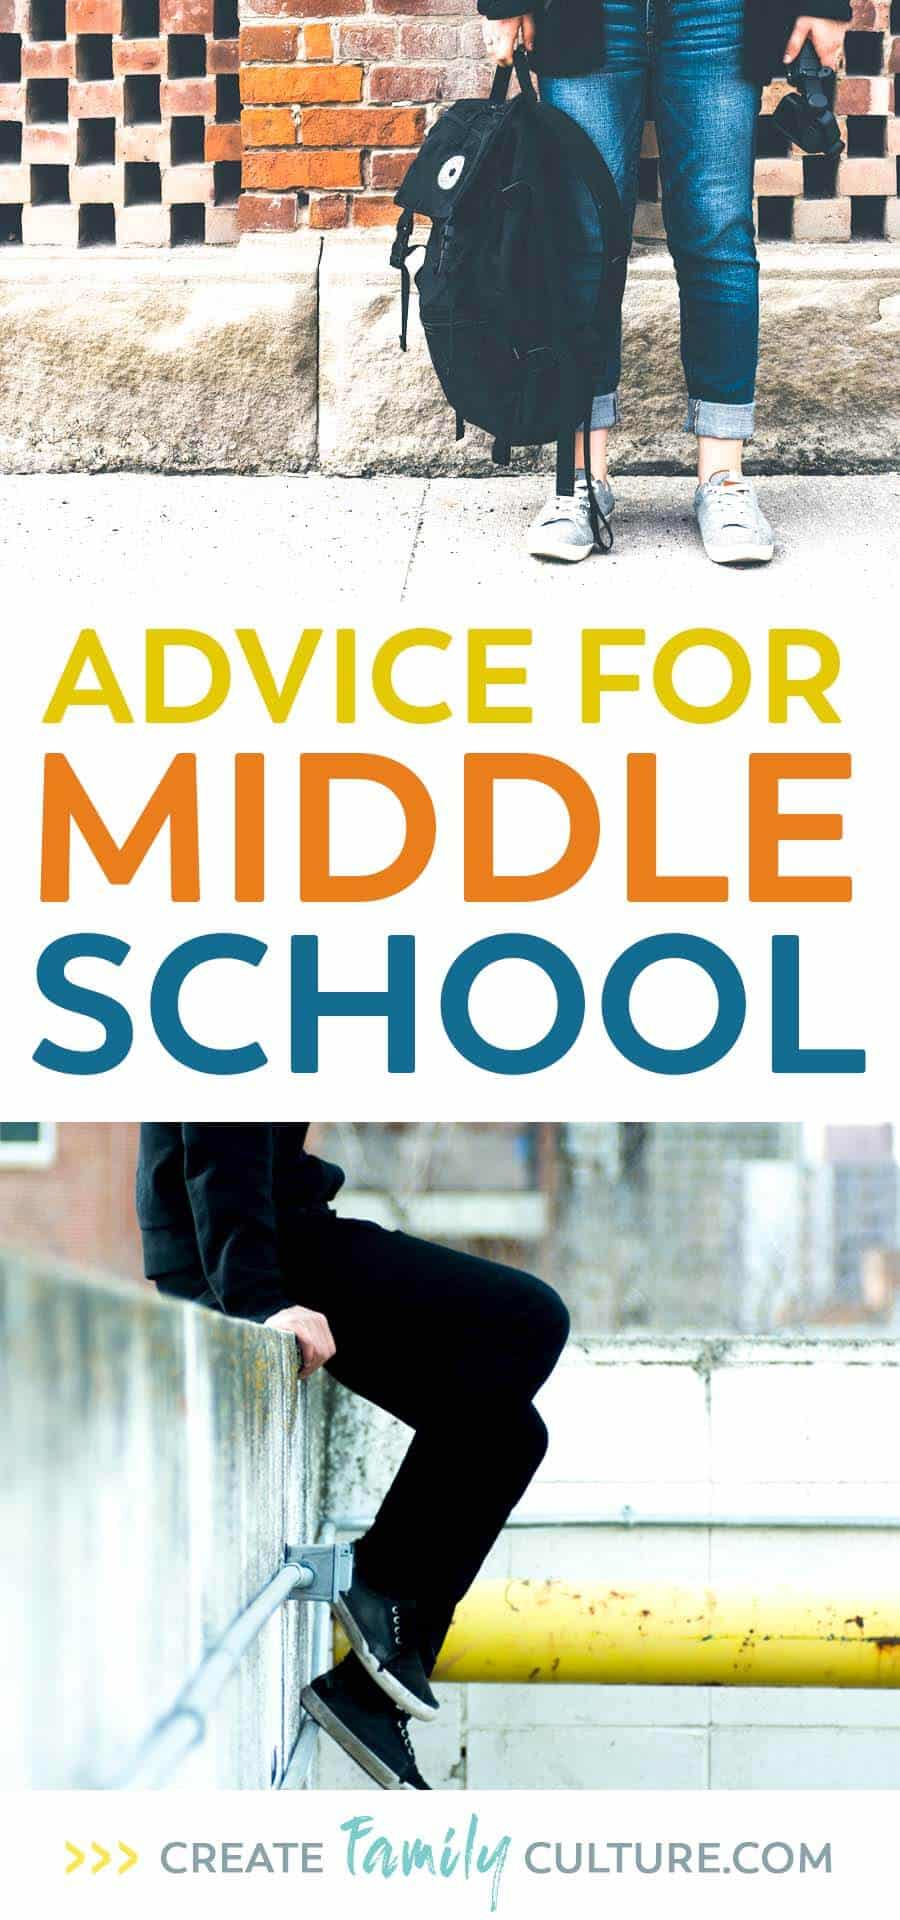 Advice for Middle School | Parenting Tips for Preteens | Intentional Parenting | Raising Godly Children #middleschool #parentingtips